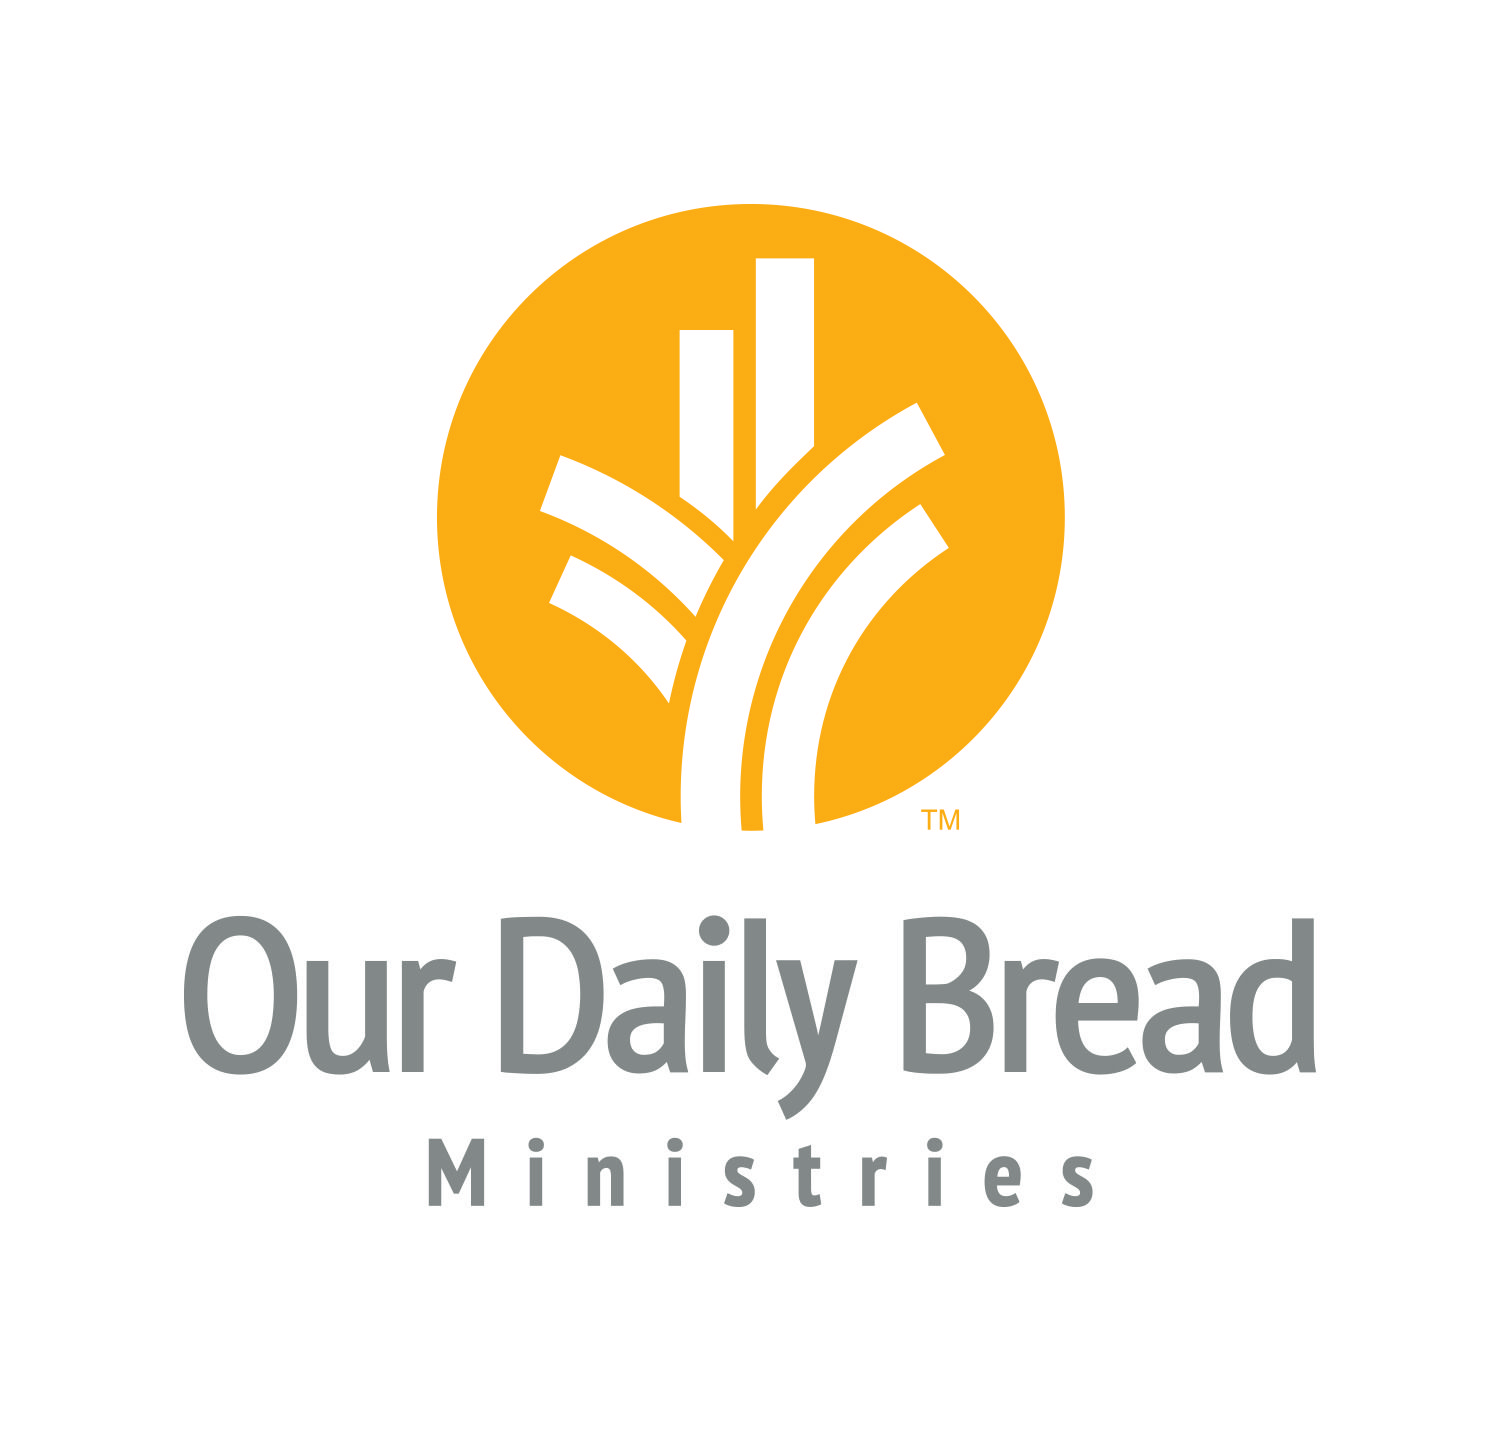 Our Daily Bread Ministries logo created by Extra Credit